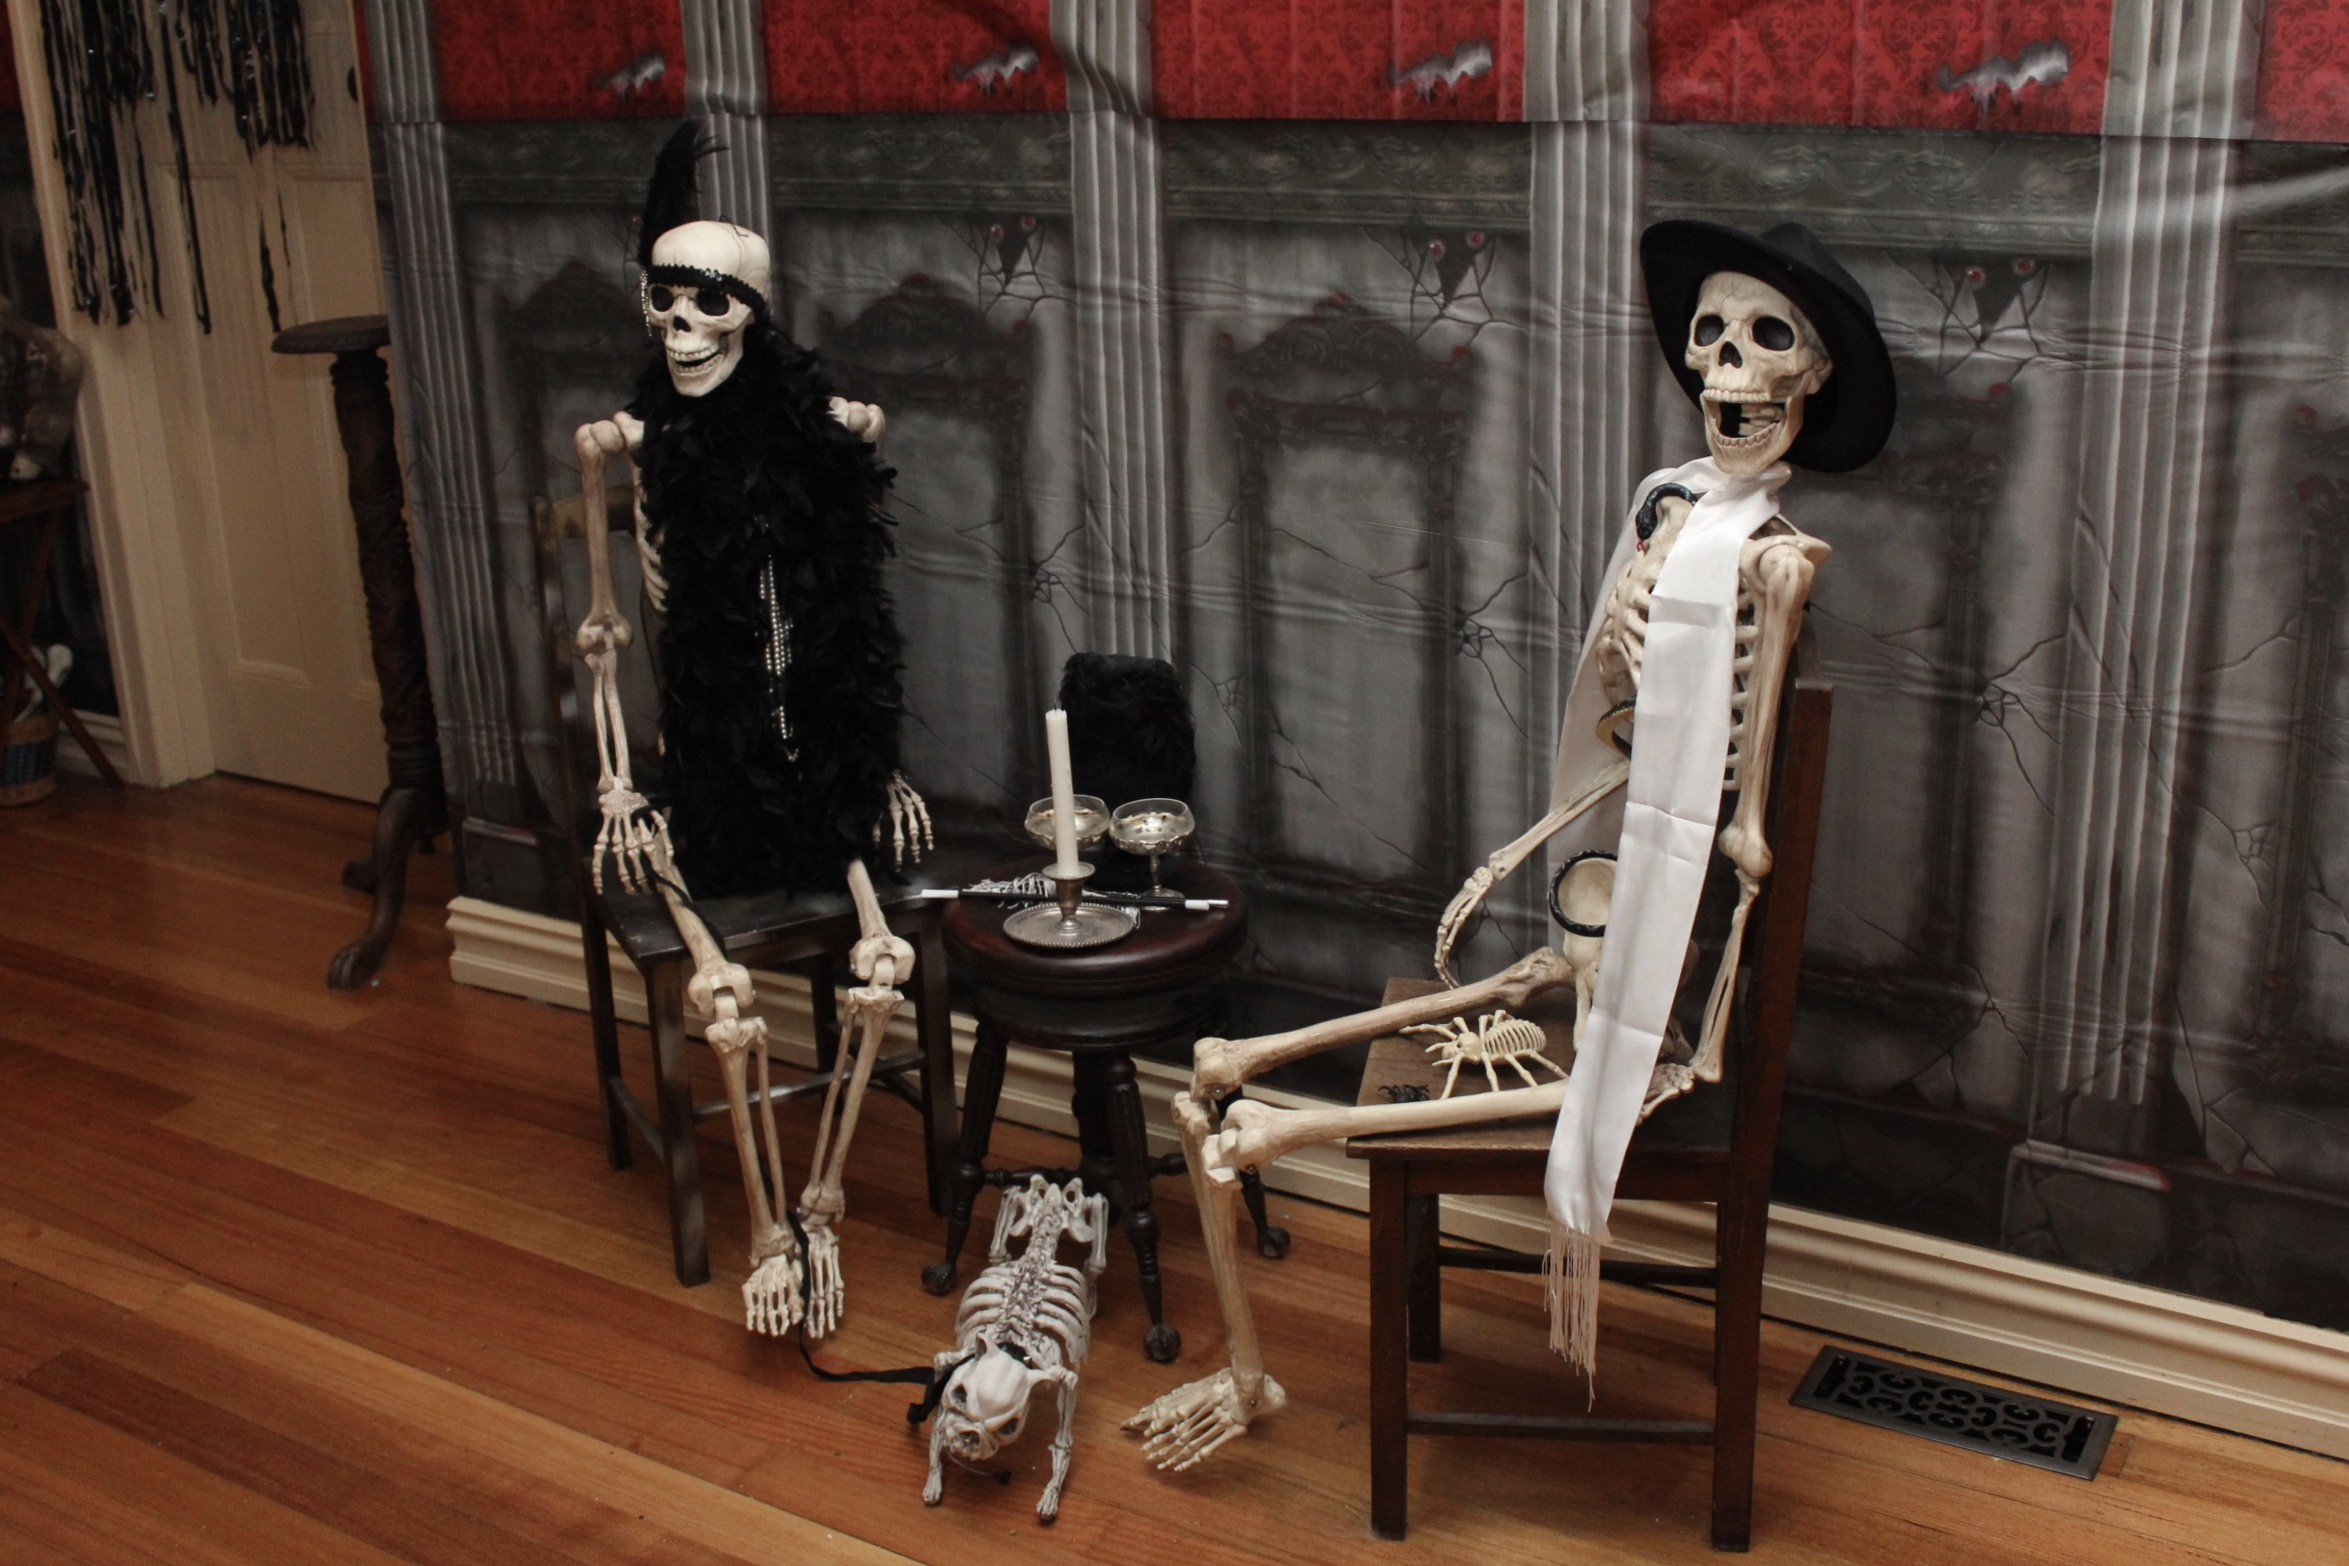 The Addams Family Party - Two skeletons for Halloween